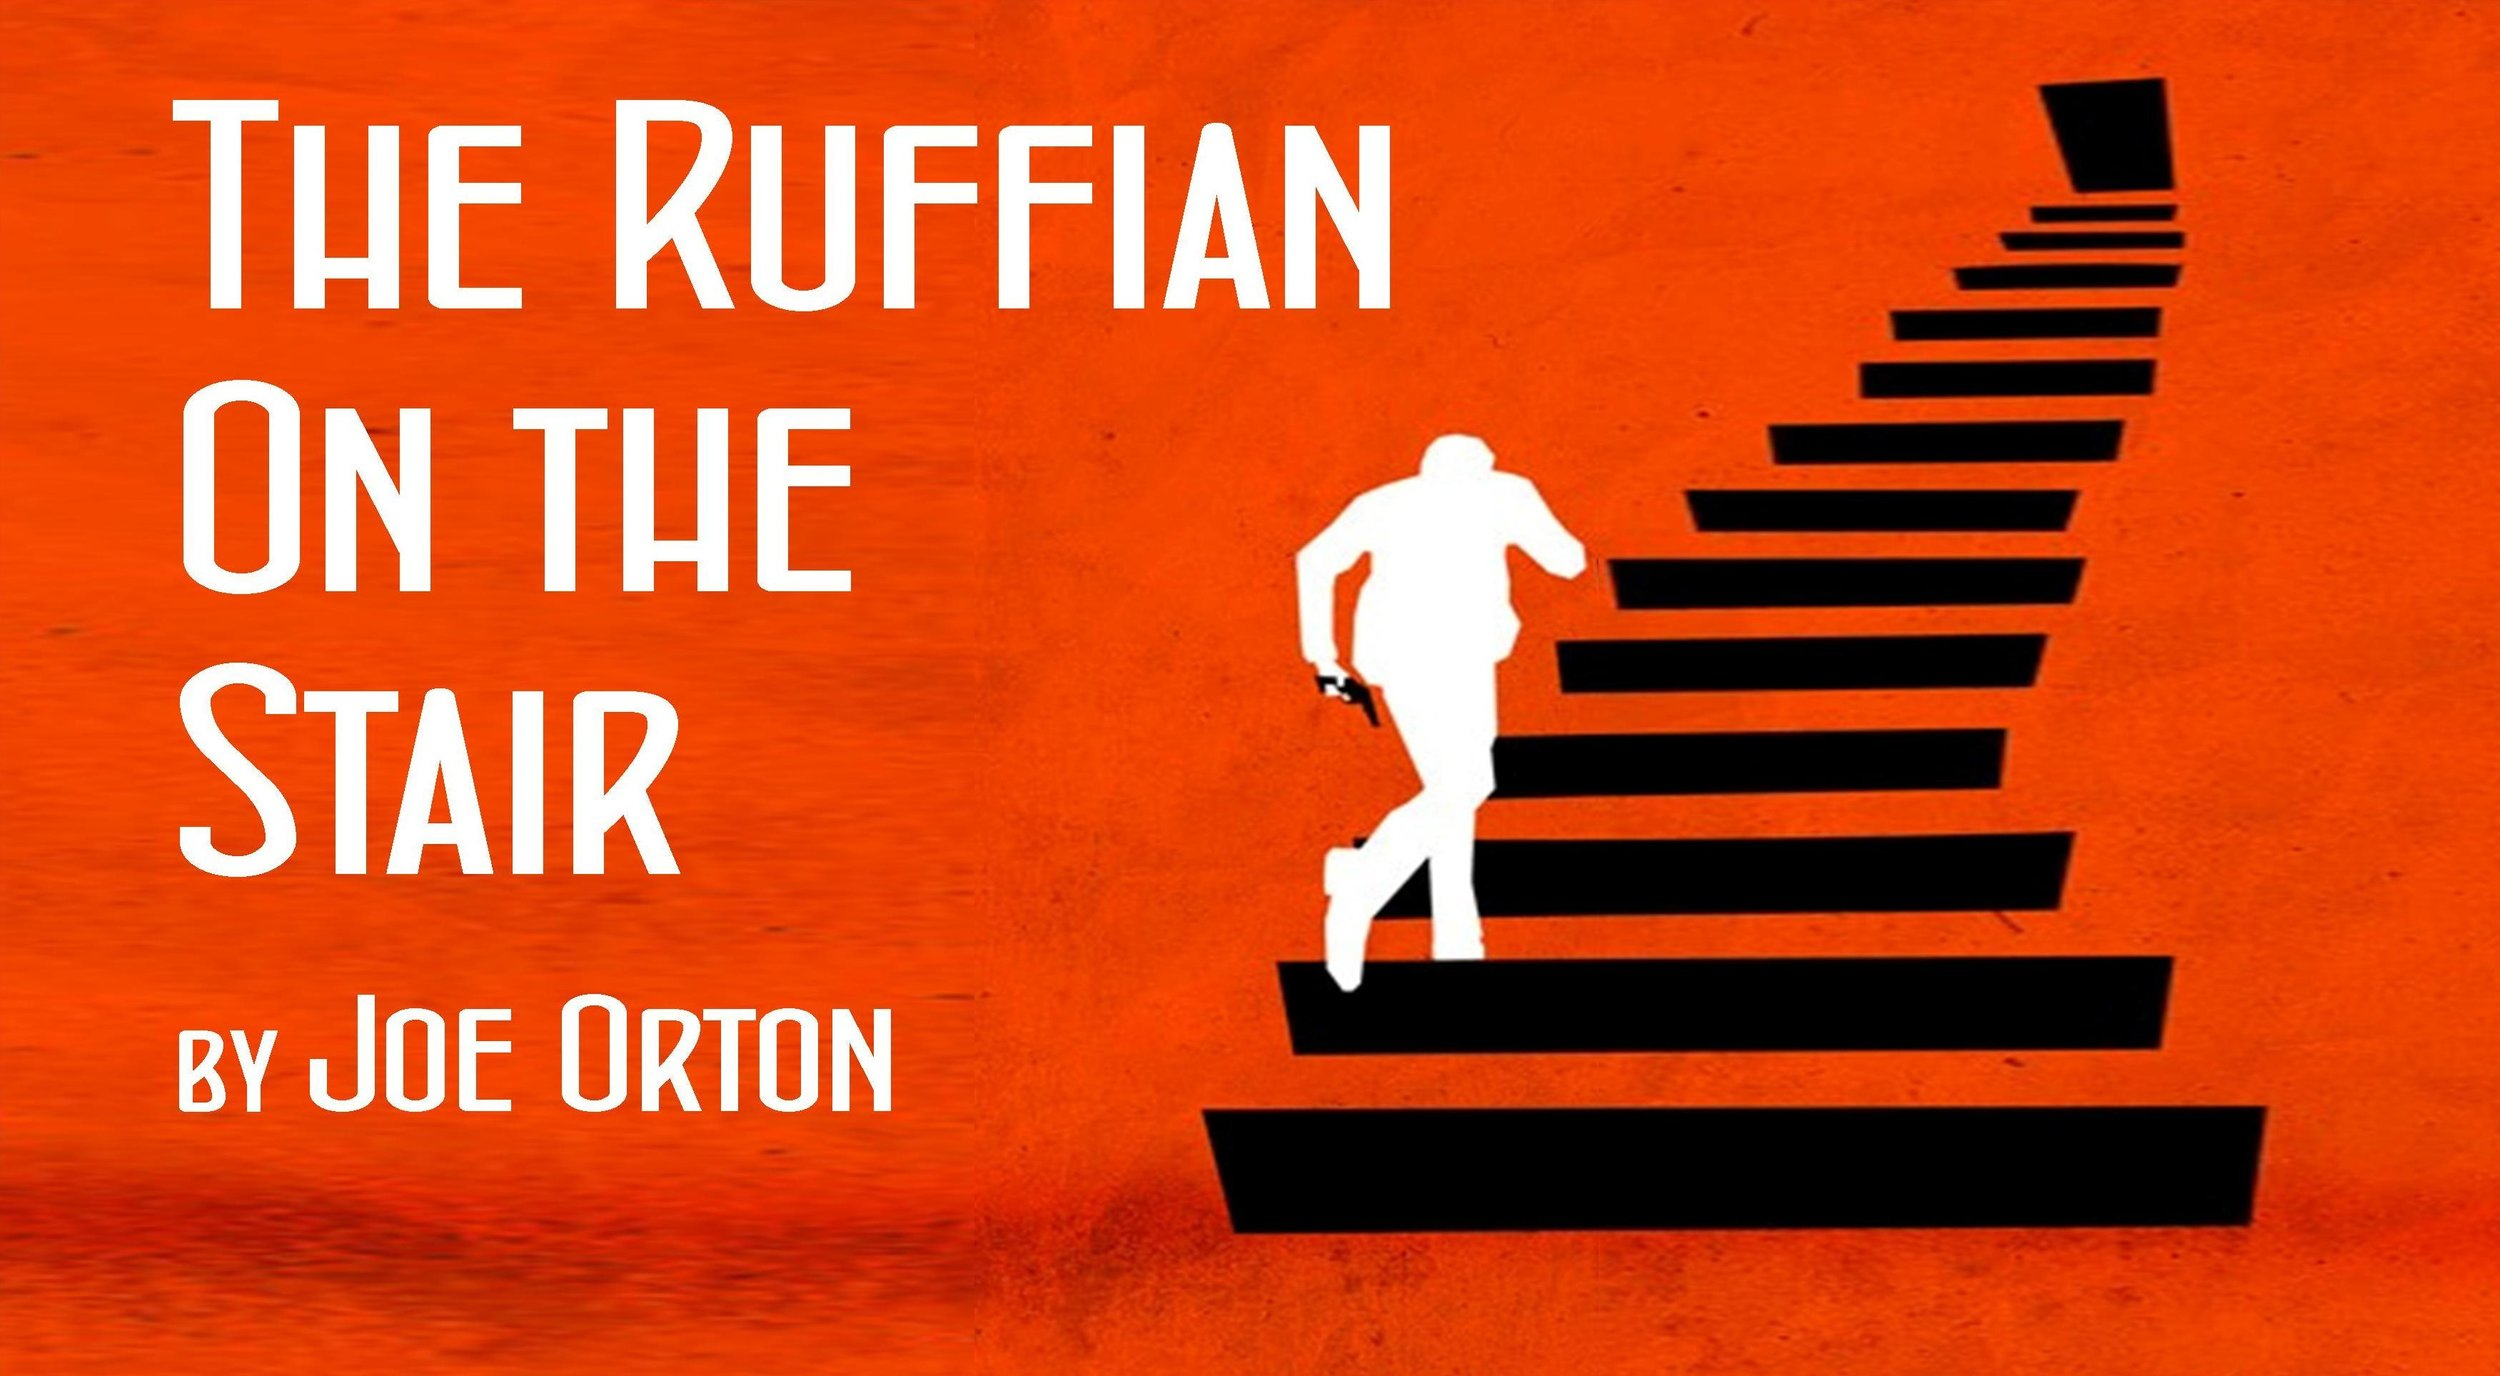 The Ruffian on the Stair image.jpg